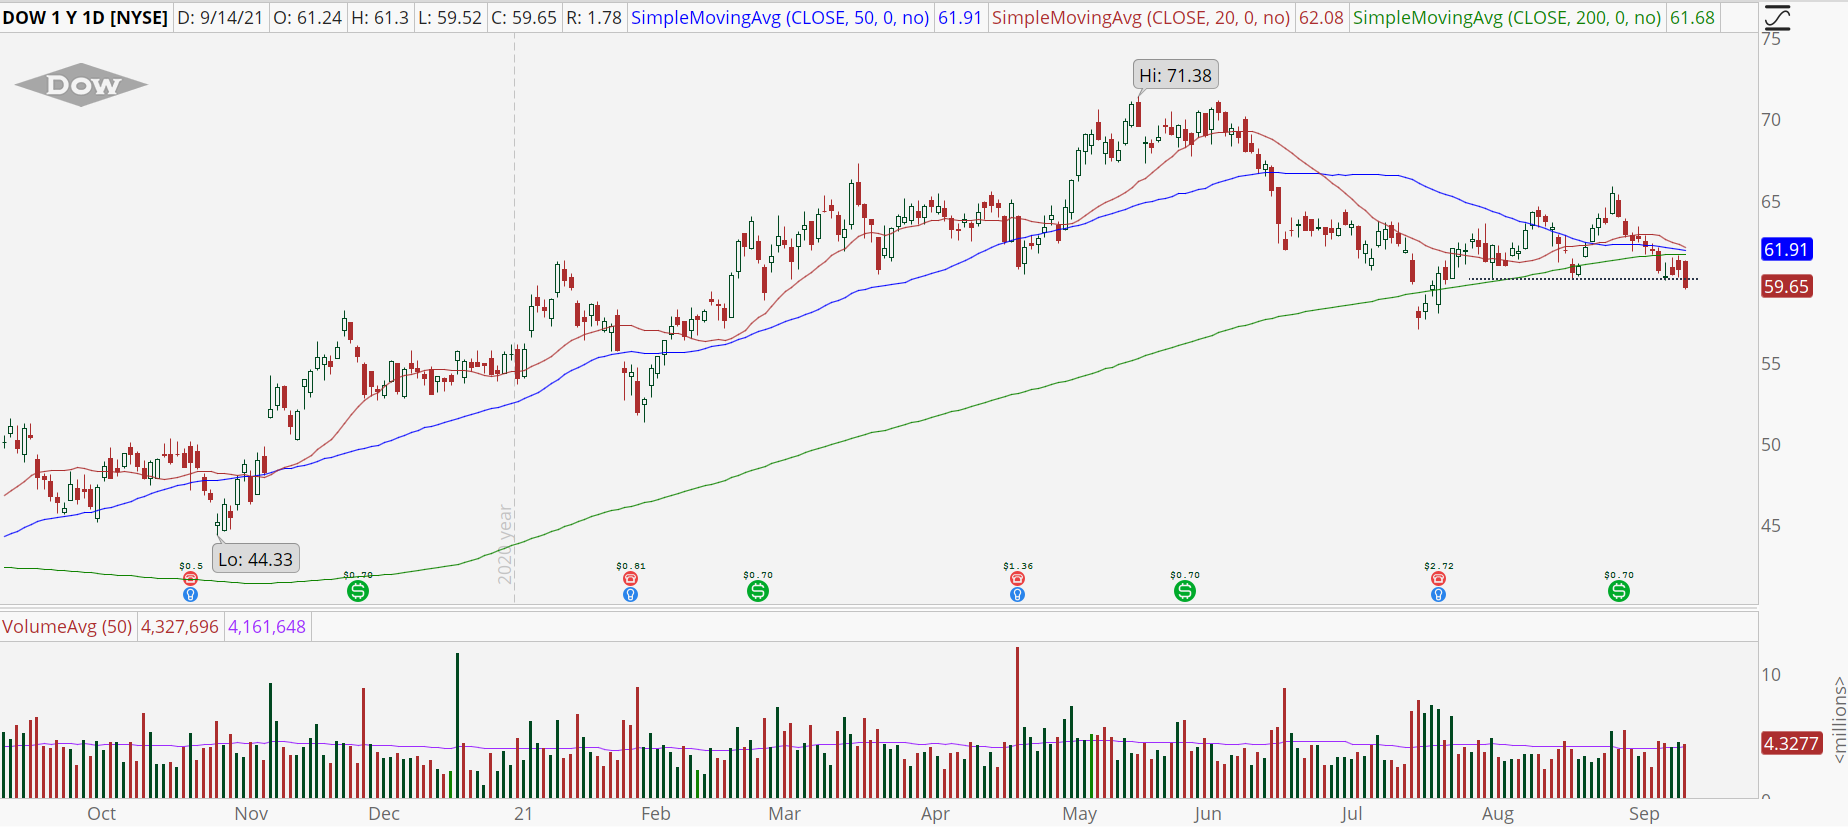 Dow Inc (DOW) stock chart with looming support break